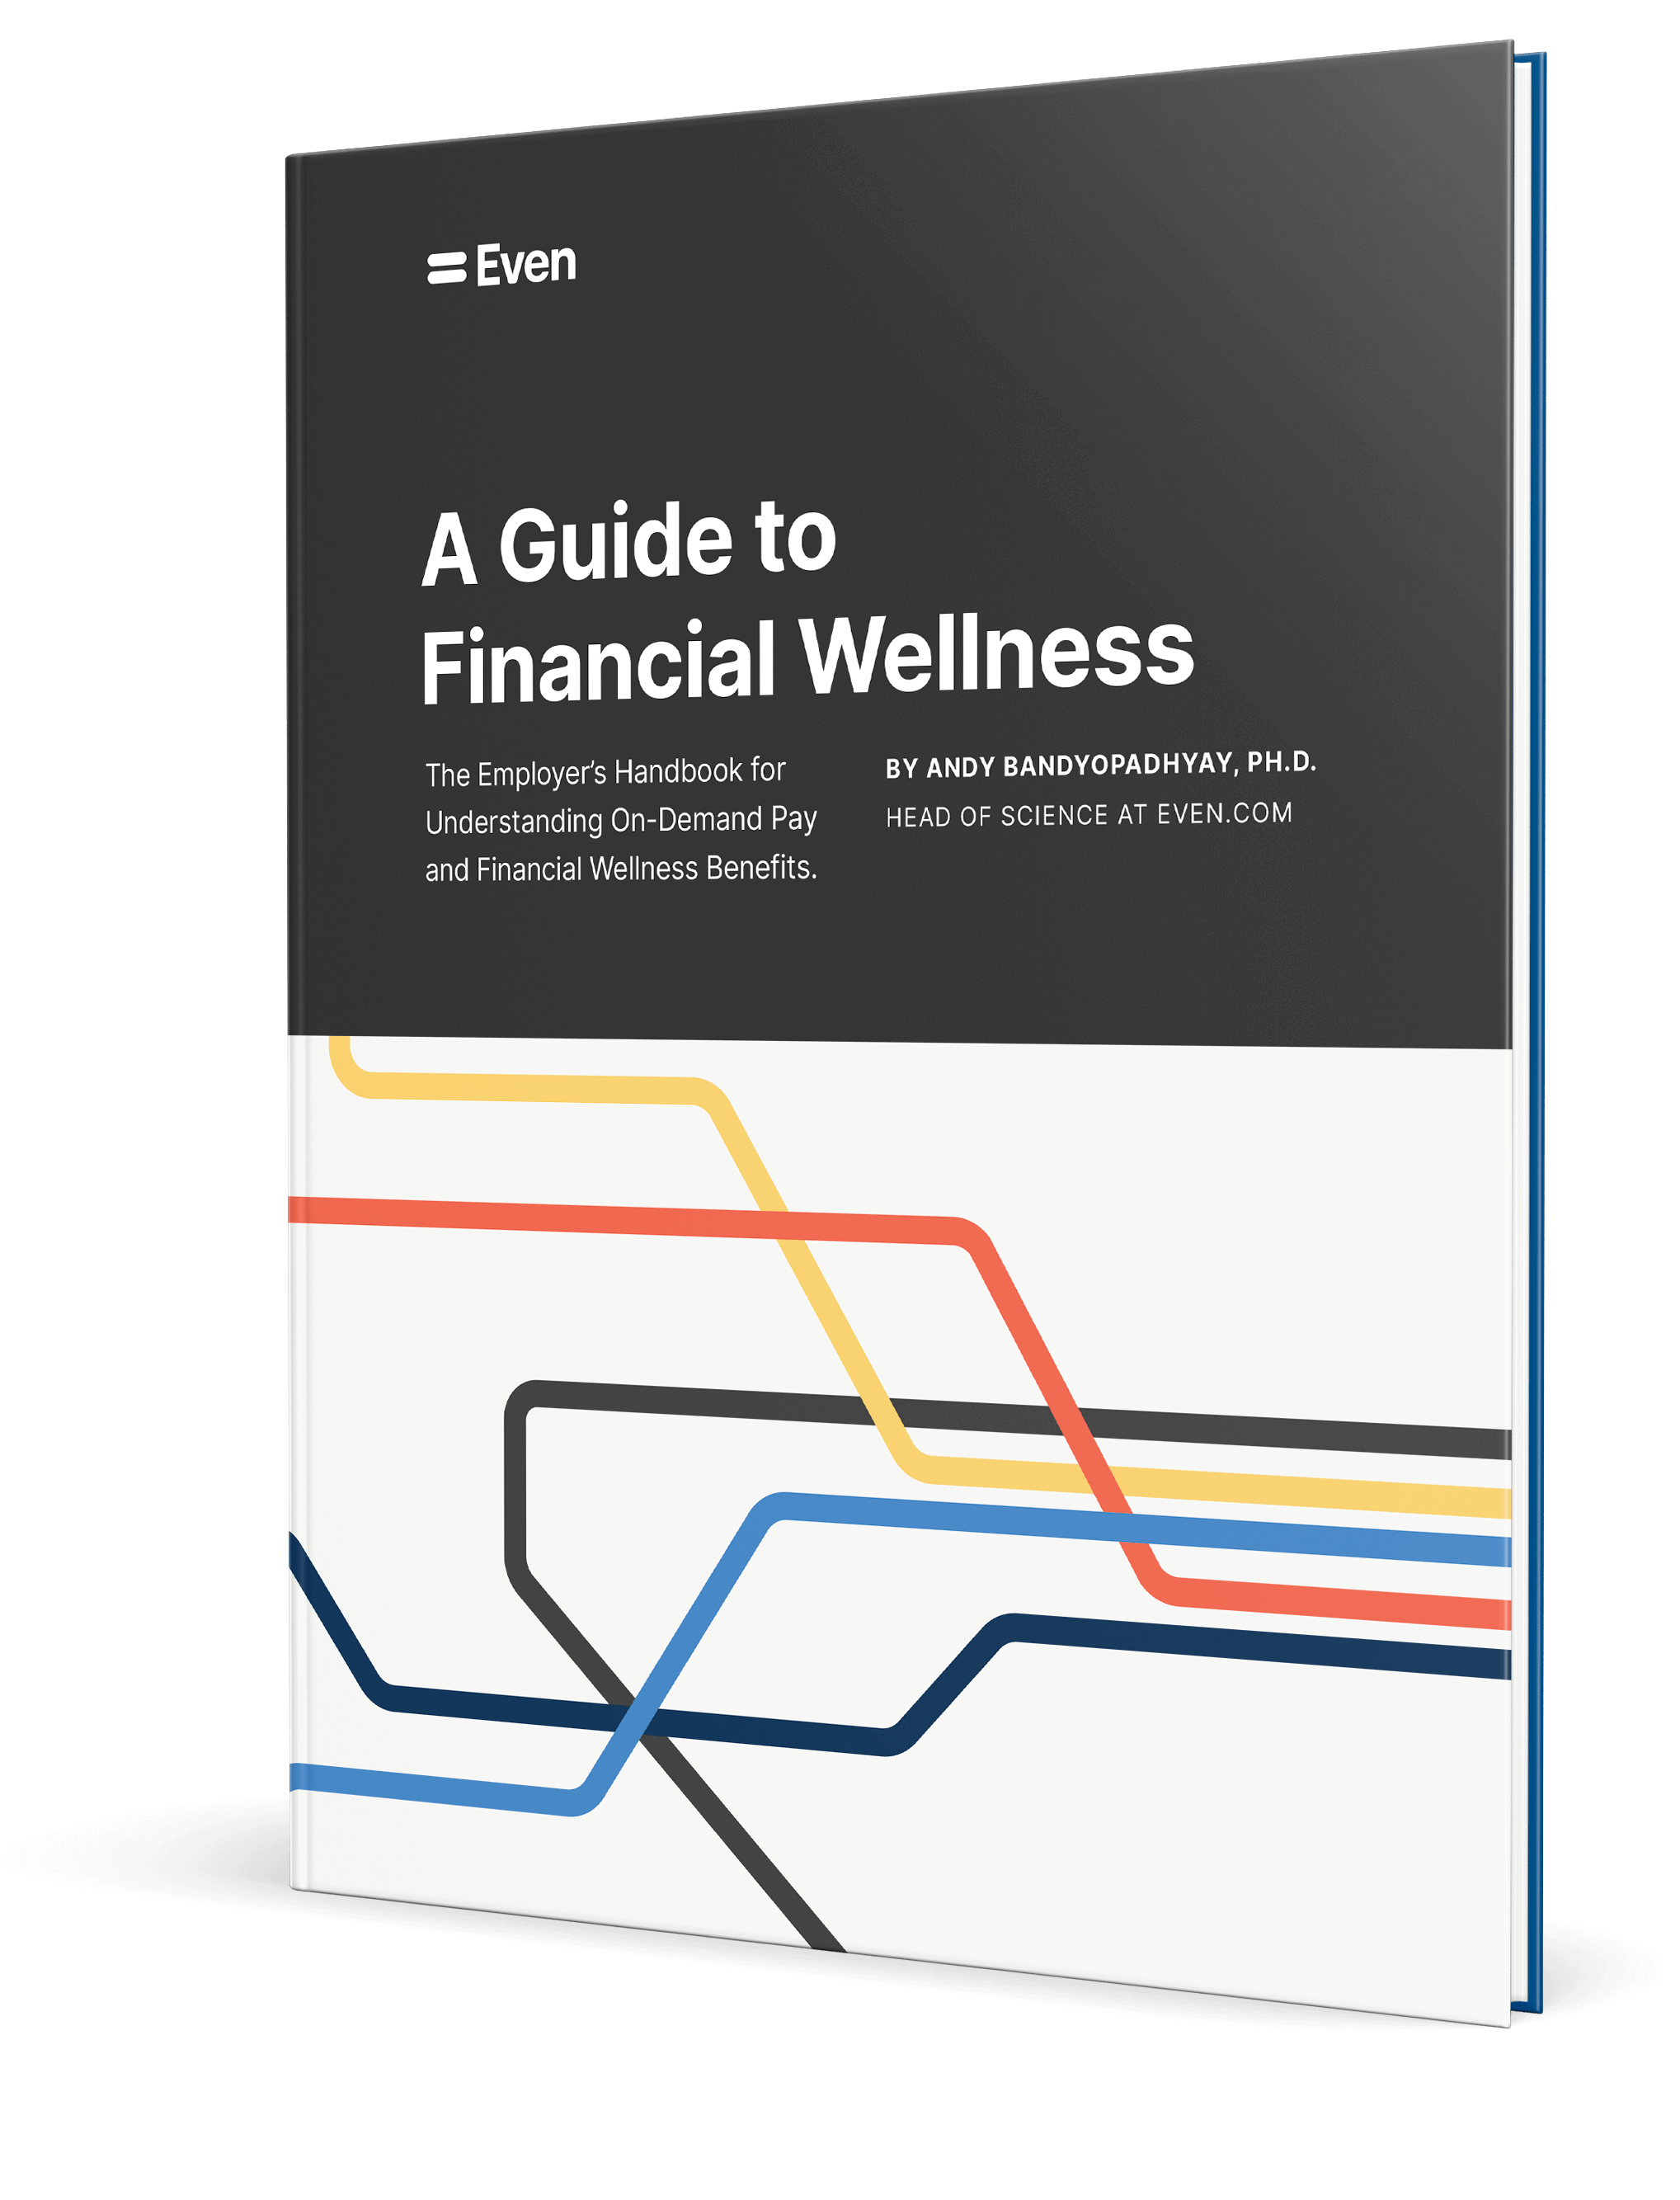 a guide to financial wellness